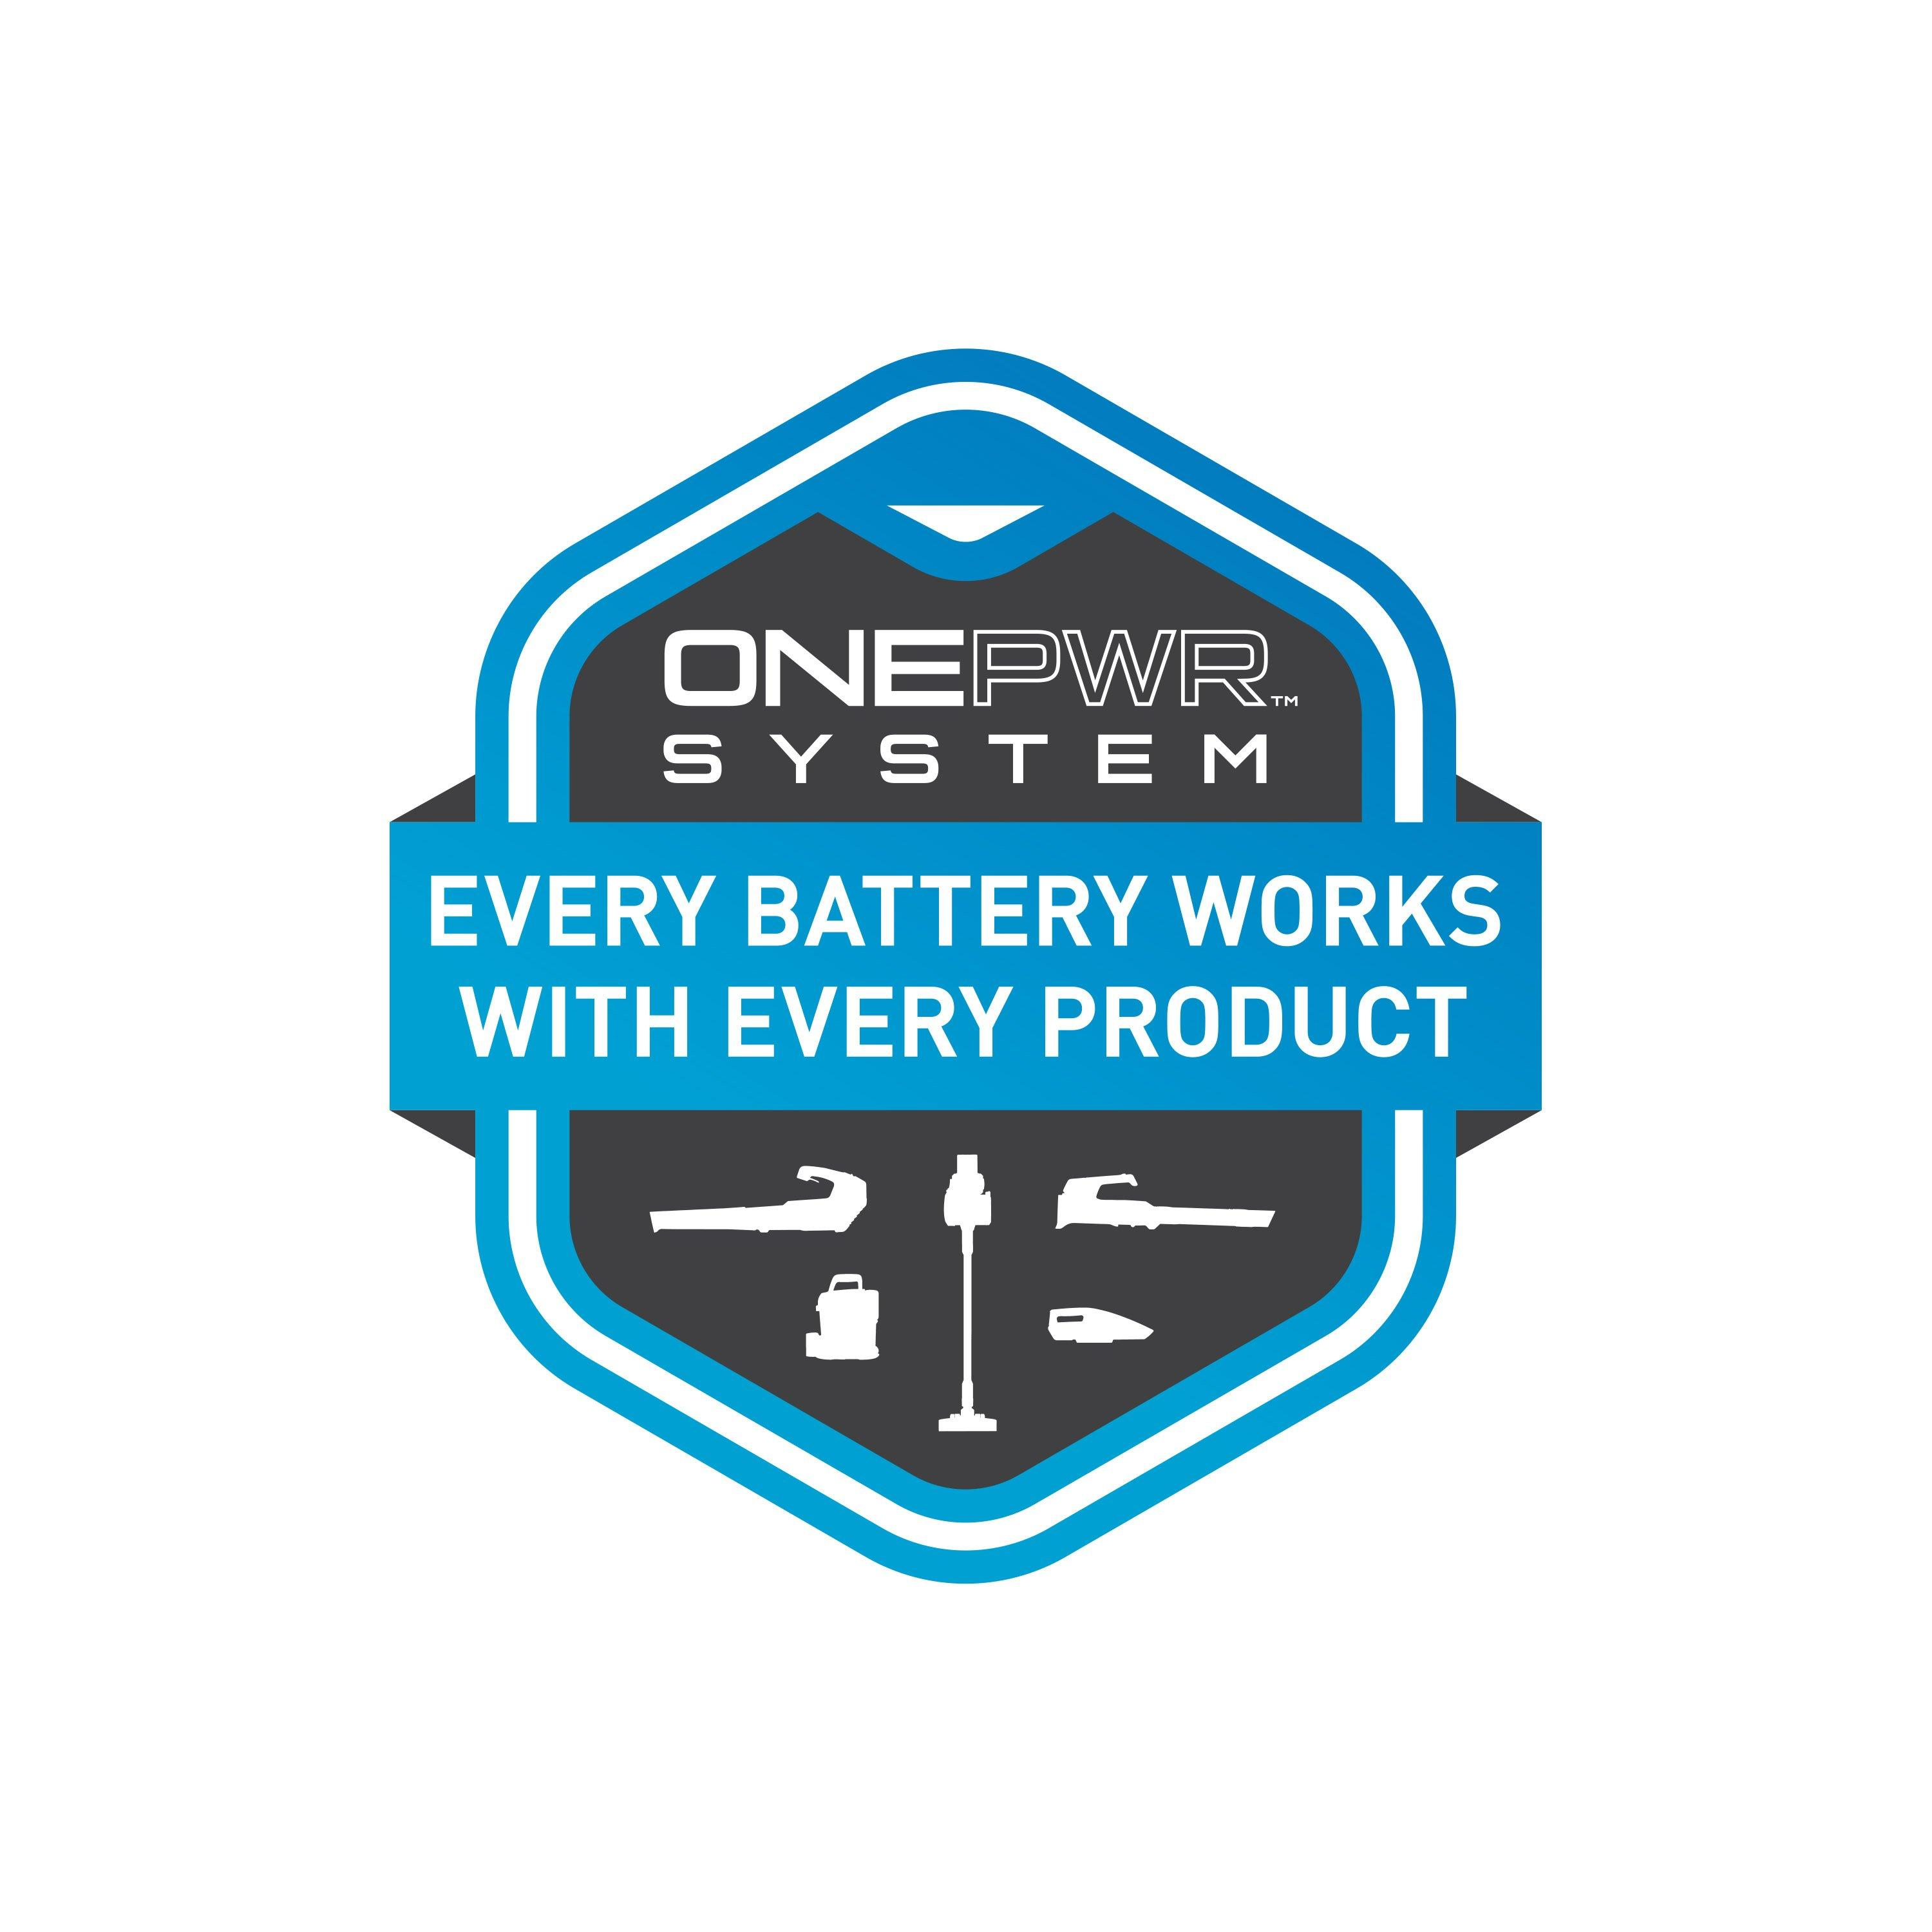 ONEPWR 3.0 Ah Lithium-Ion Battery5